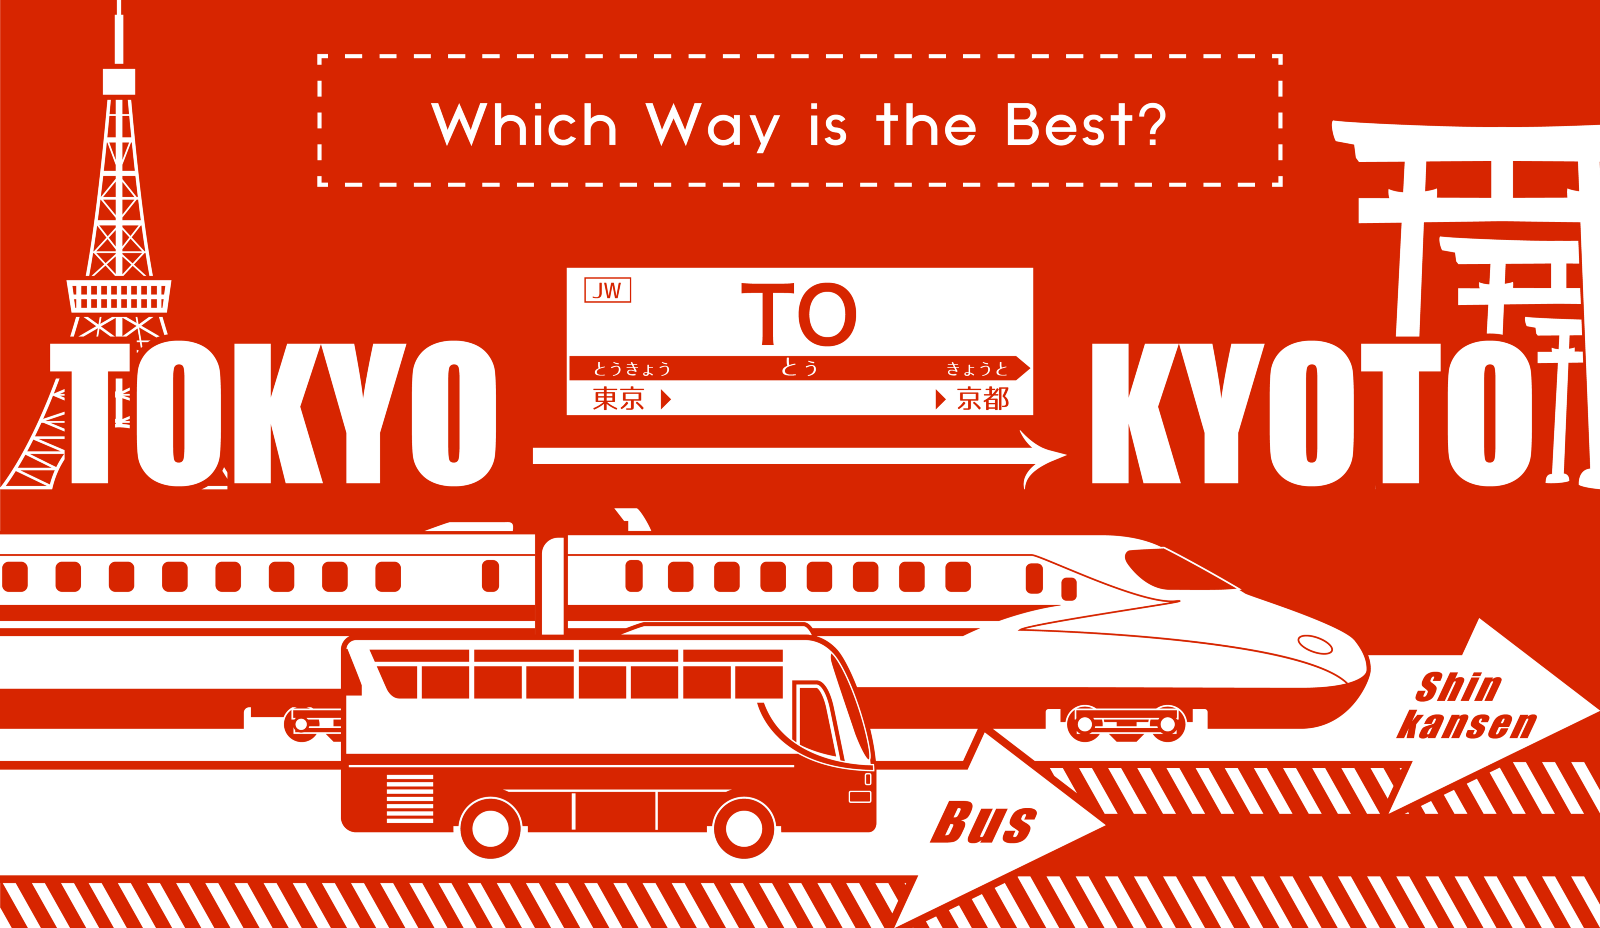 From Tokyo to Kyoto: Which Way is the Cheapest and Fastest??